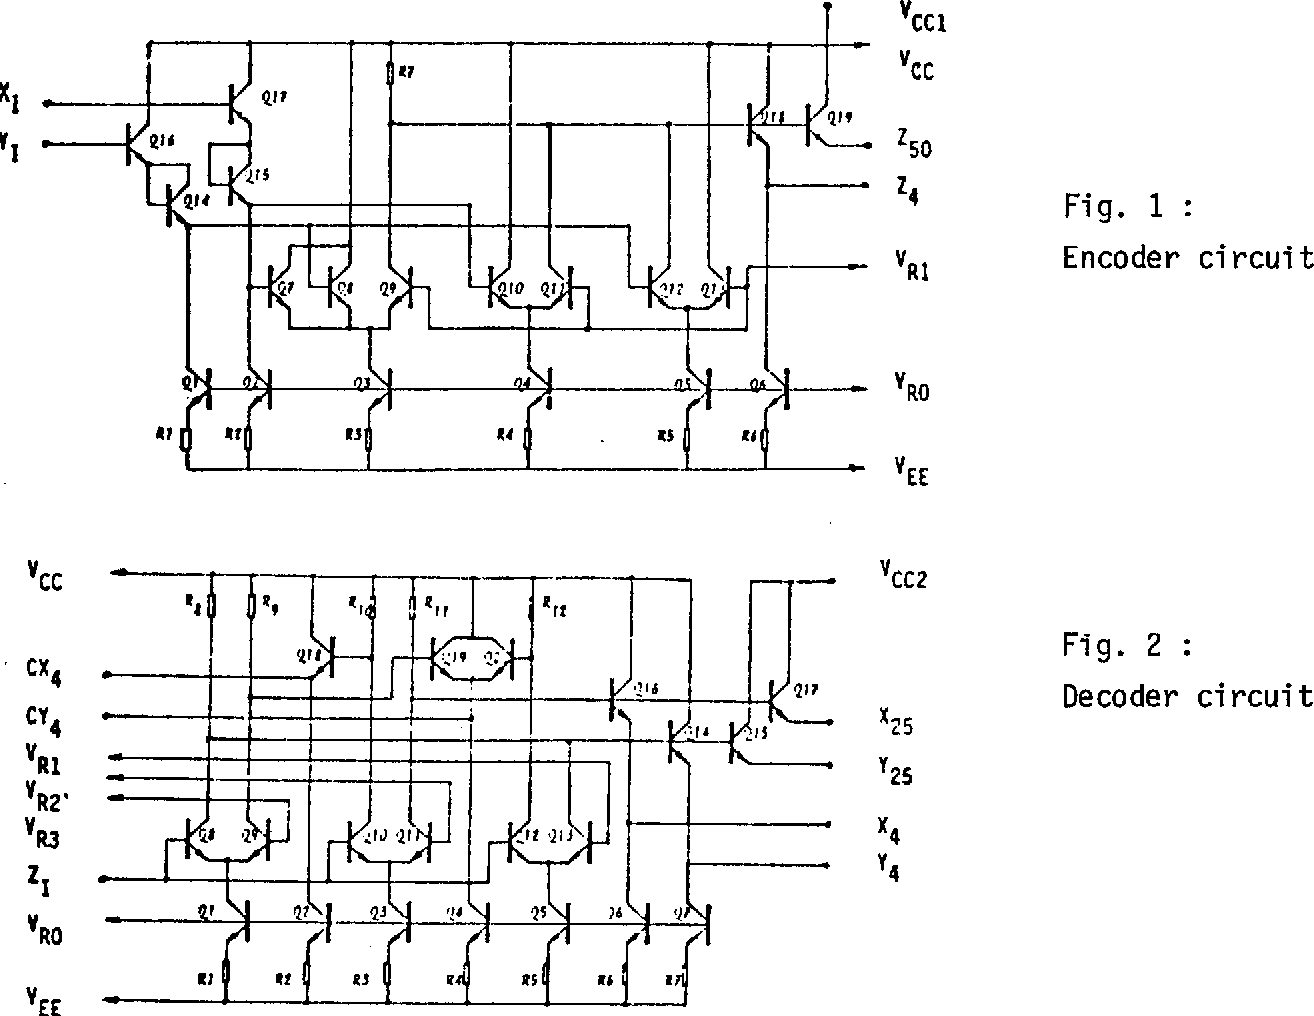 A 4-valued ECL encoder and decoder circuit - Semantic Scholar